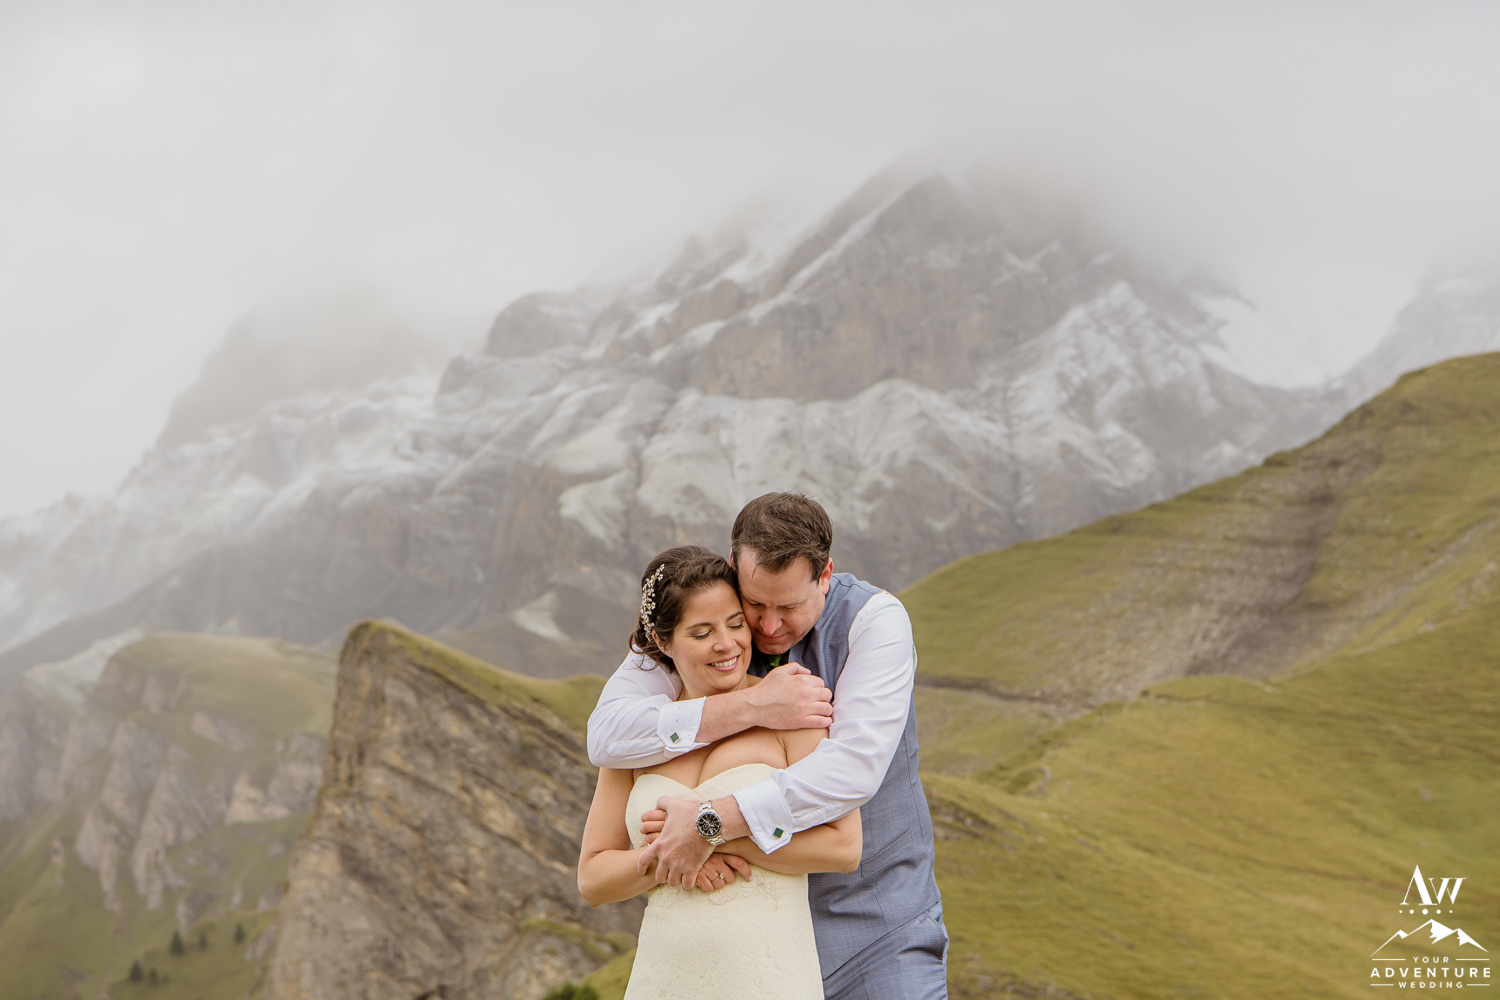 Intimate Adventure Wedding Photos on Engstligenalp mountain